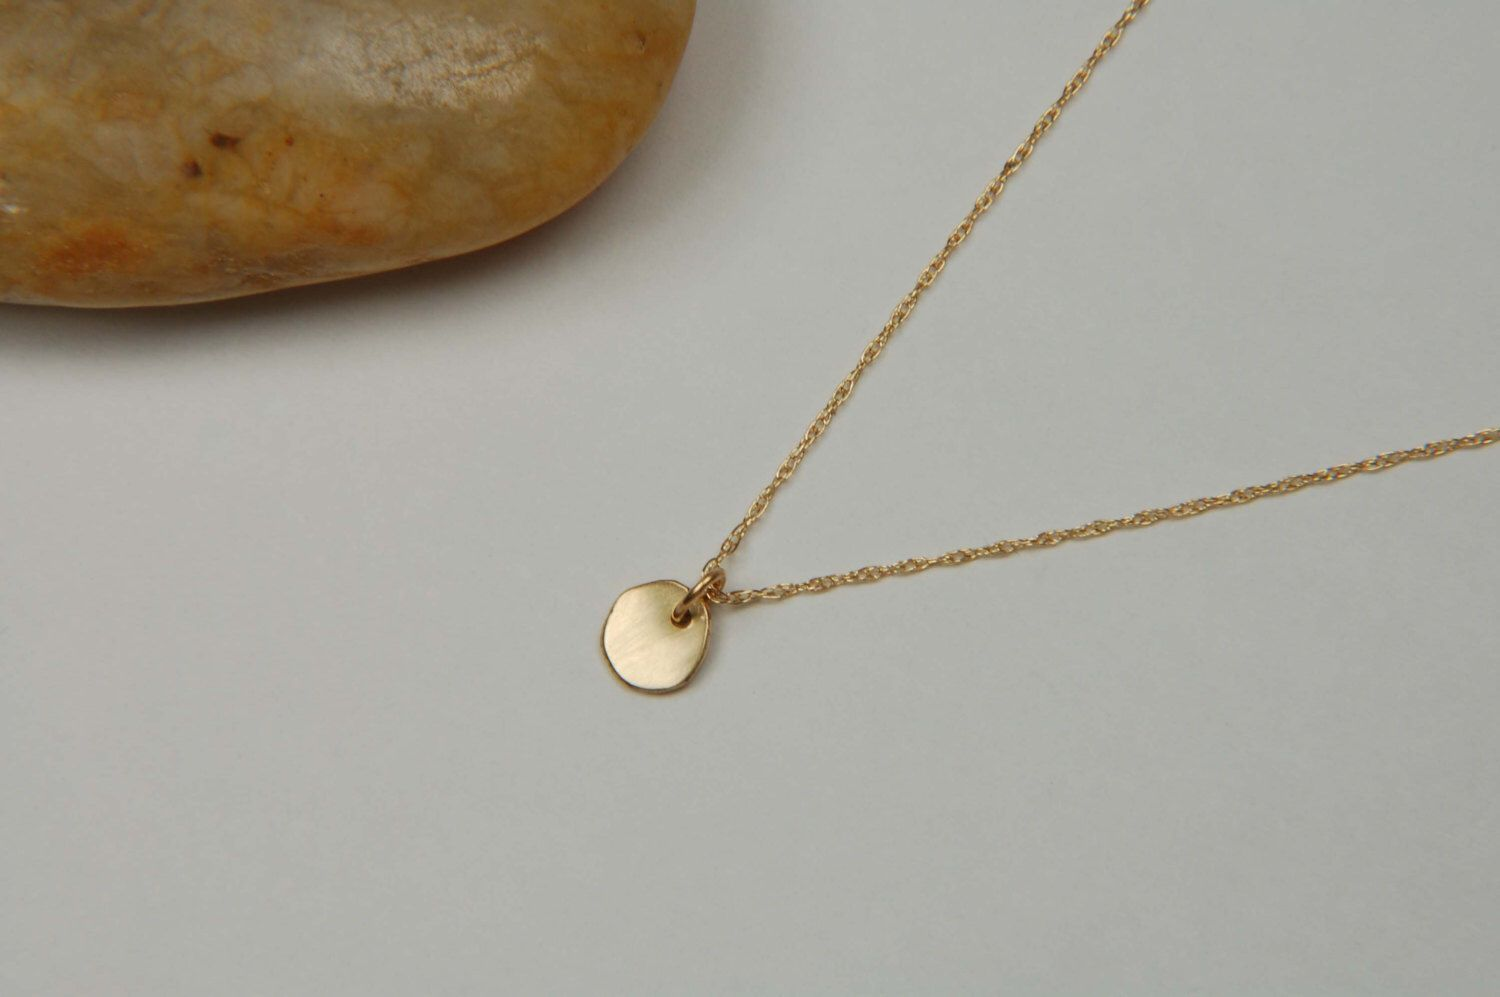 simple design necklace gold anextweb